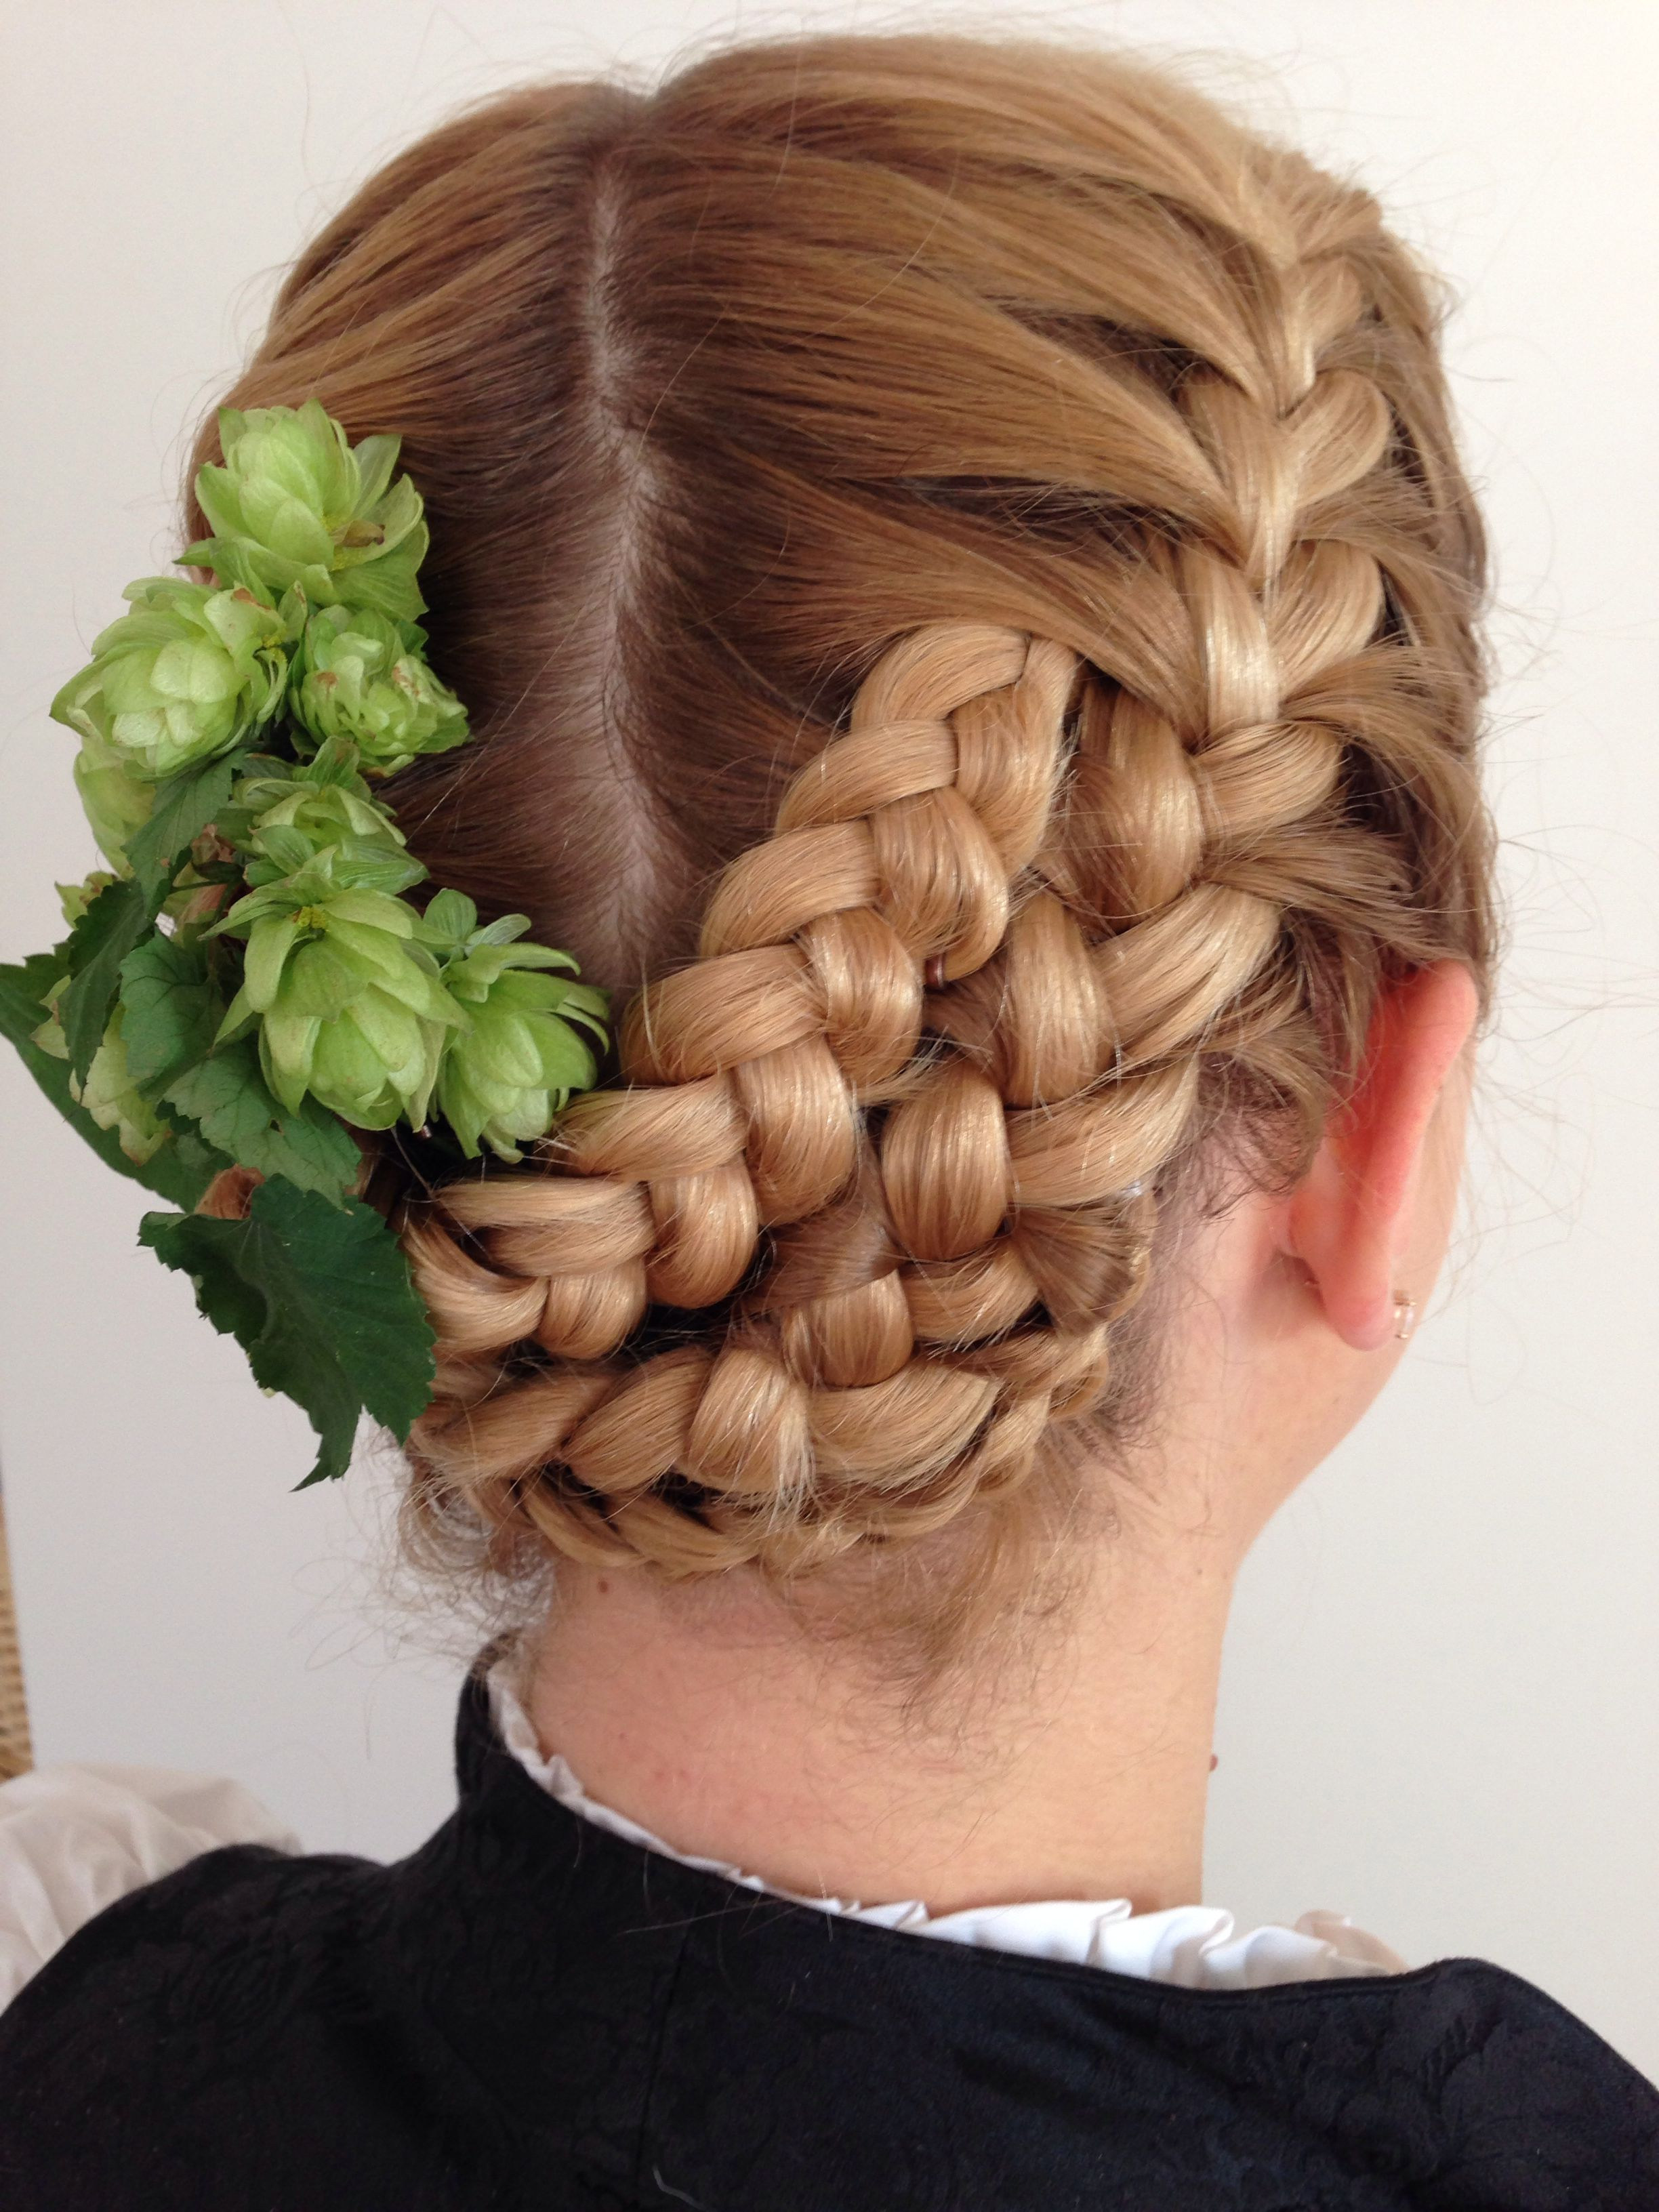 Cloudy S Dirndl Braids 4 Frisuren